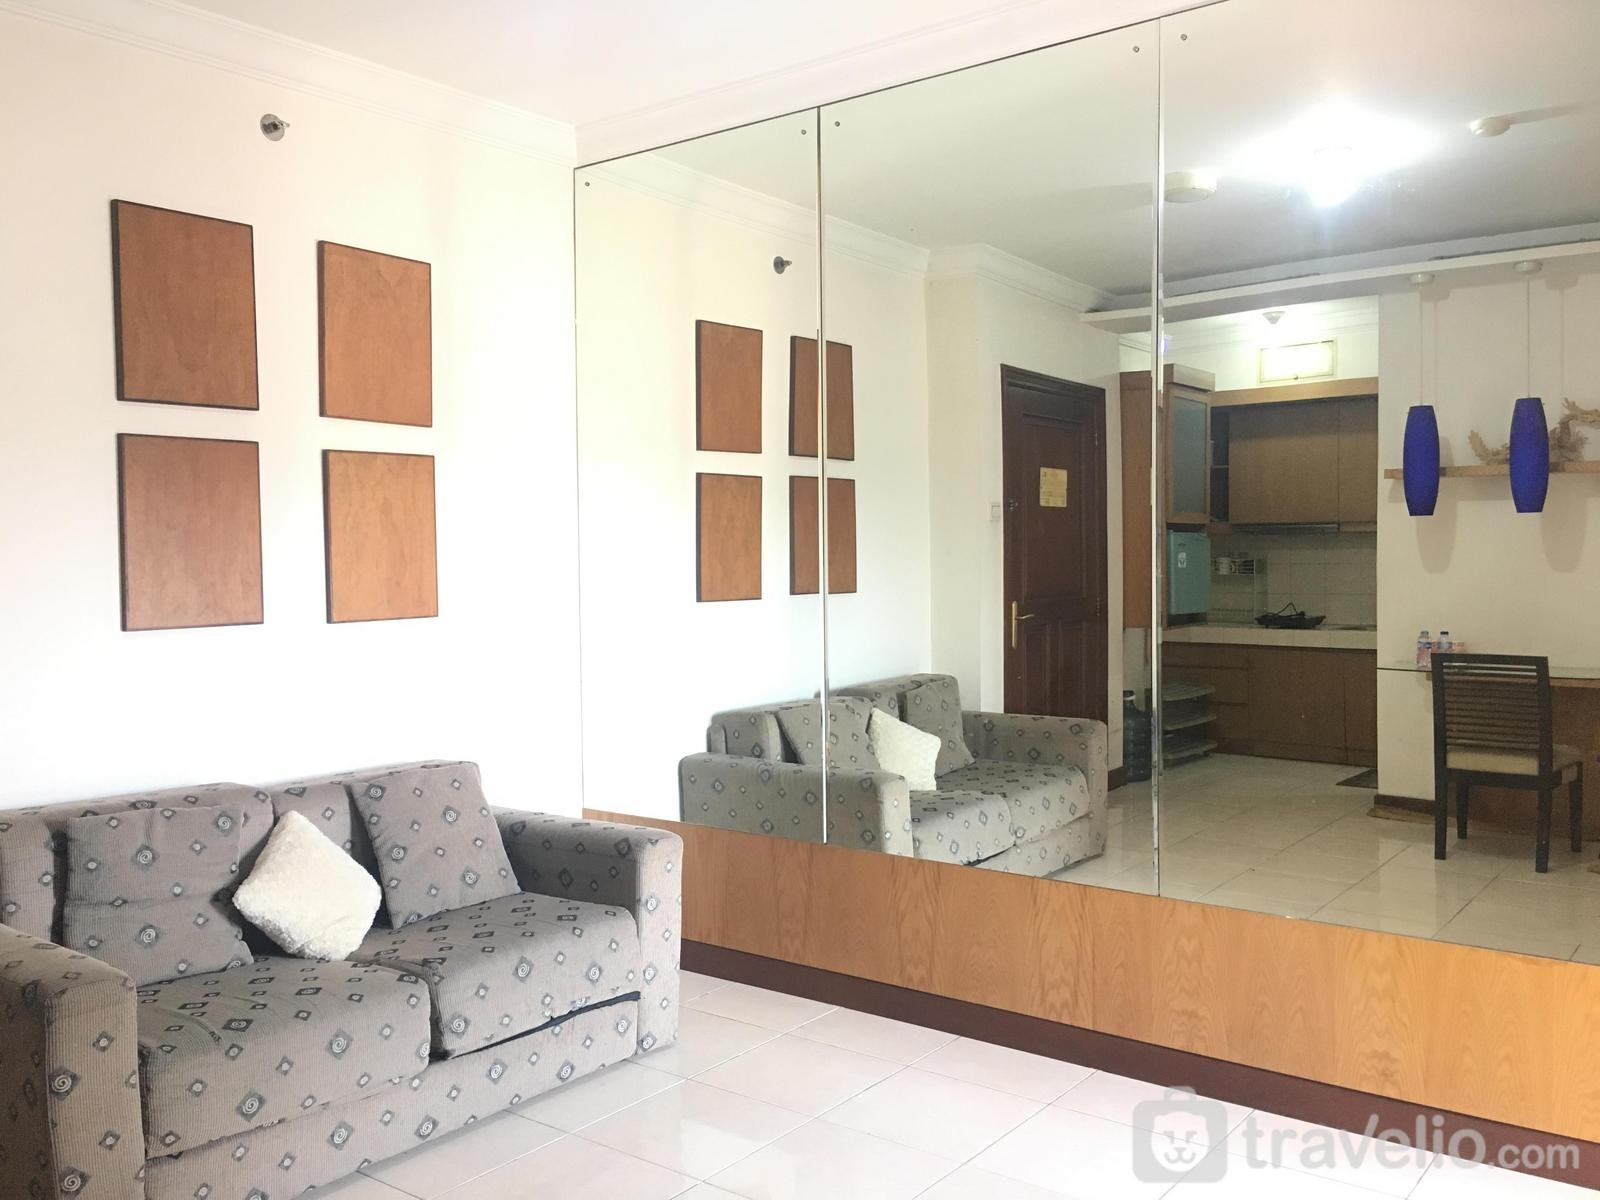 Majesty Apartment - Cozy 2BR Apartment At Majesty Near Maranatha University By Travelio